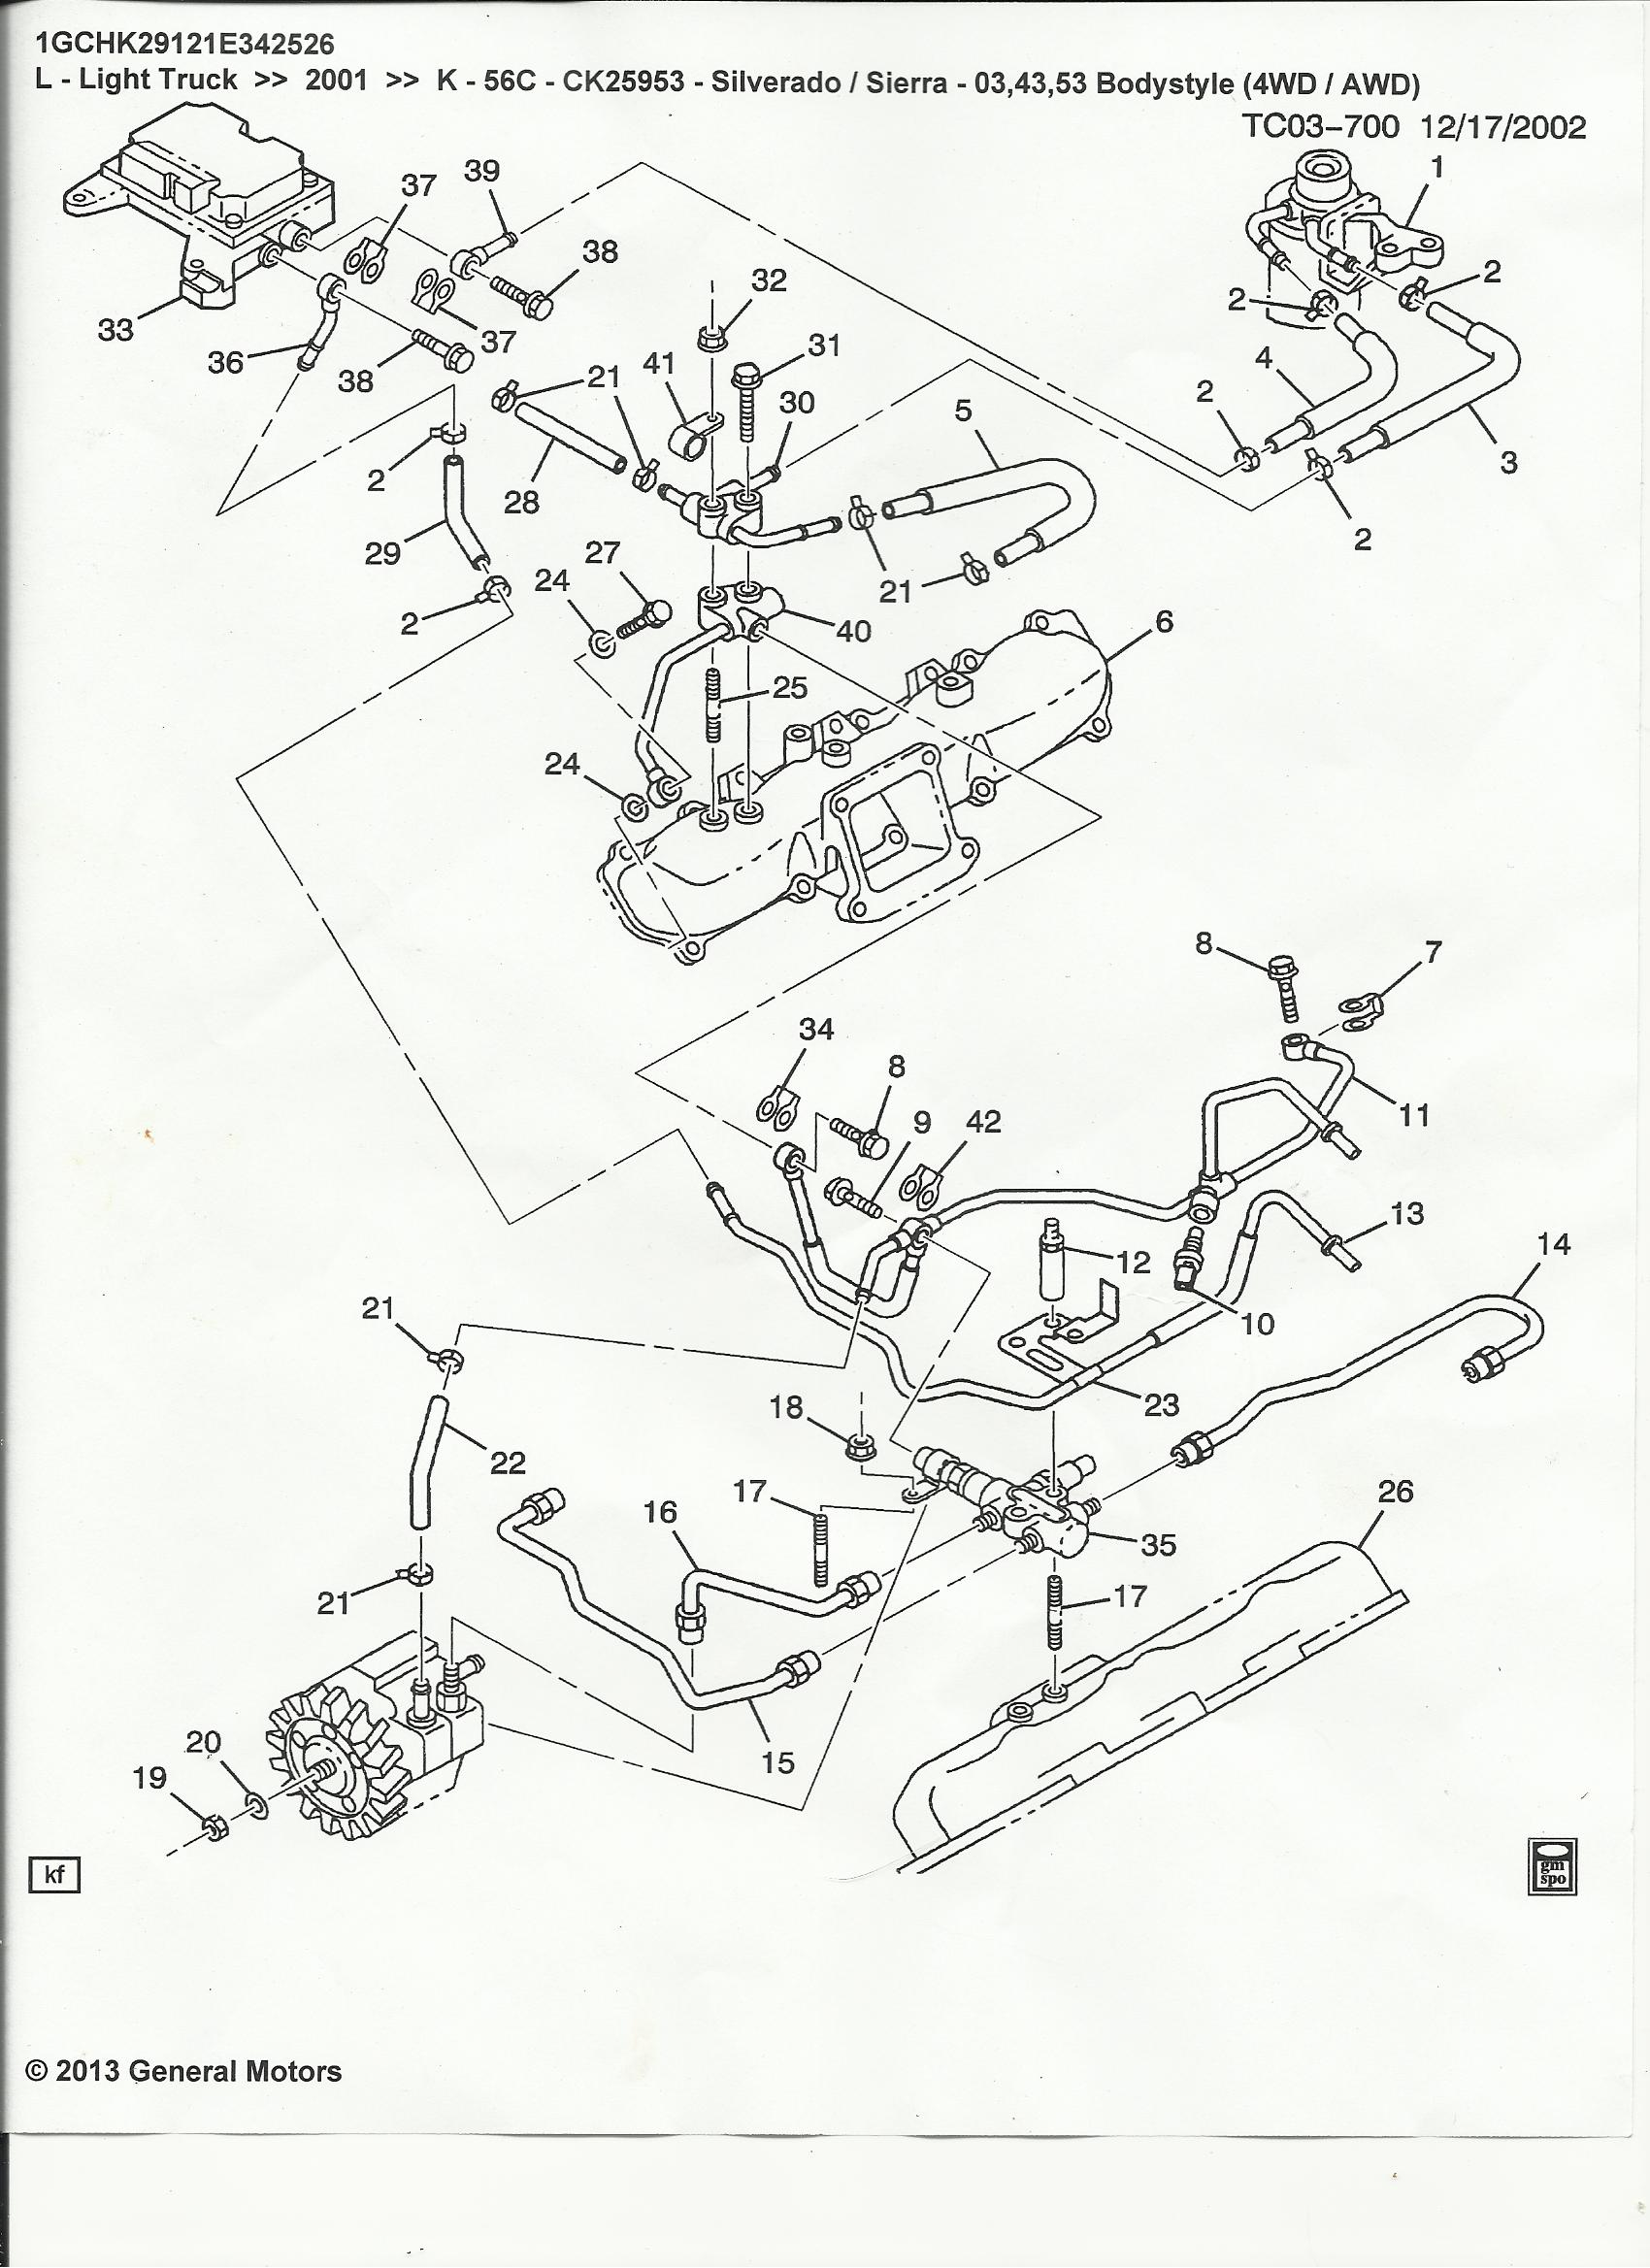 Duramax Lb7 Fuel System Diagram Diagram Wiring Diagram